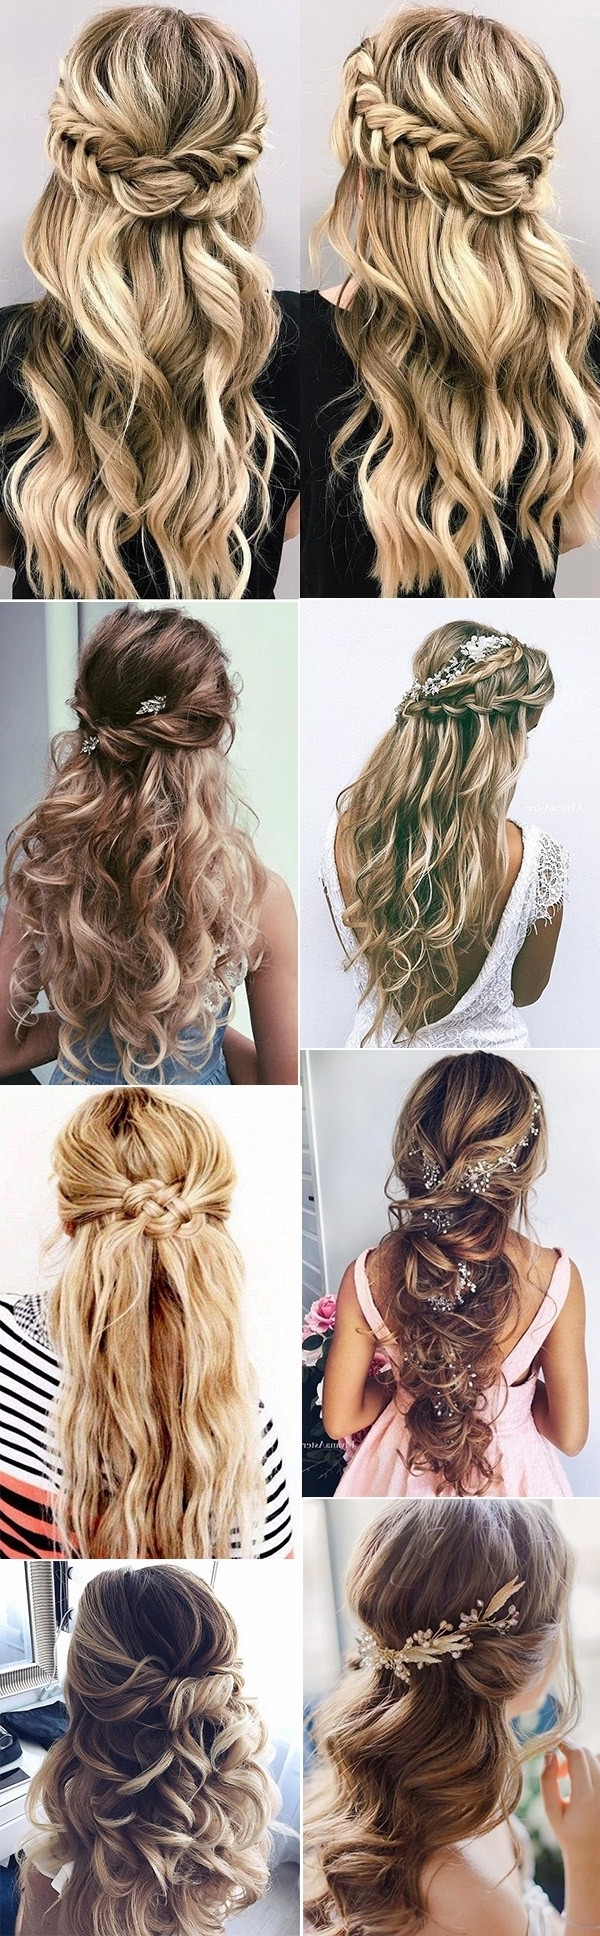 Widely Used Half Up Half Down Wedding Hairstyles Regarding 15 Chic Half Up Half Down Wedding Hairstyles For Long Hair (View 15 of 15)